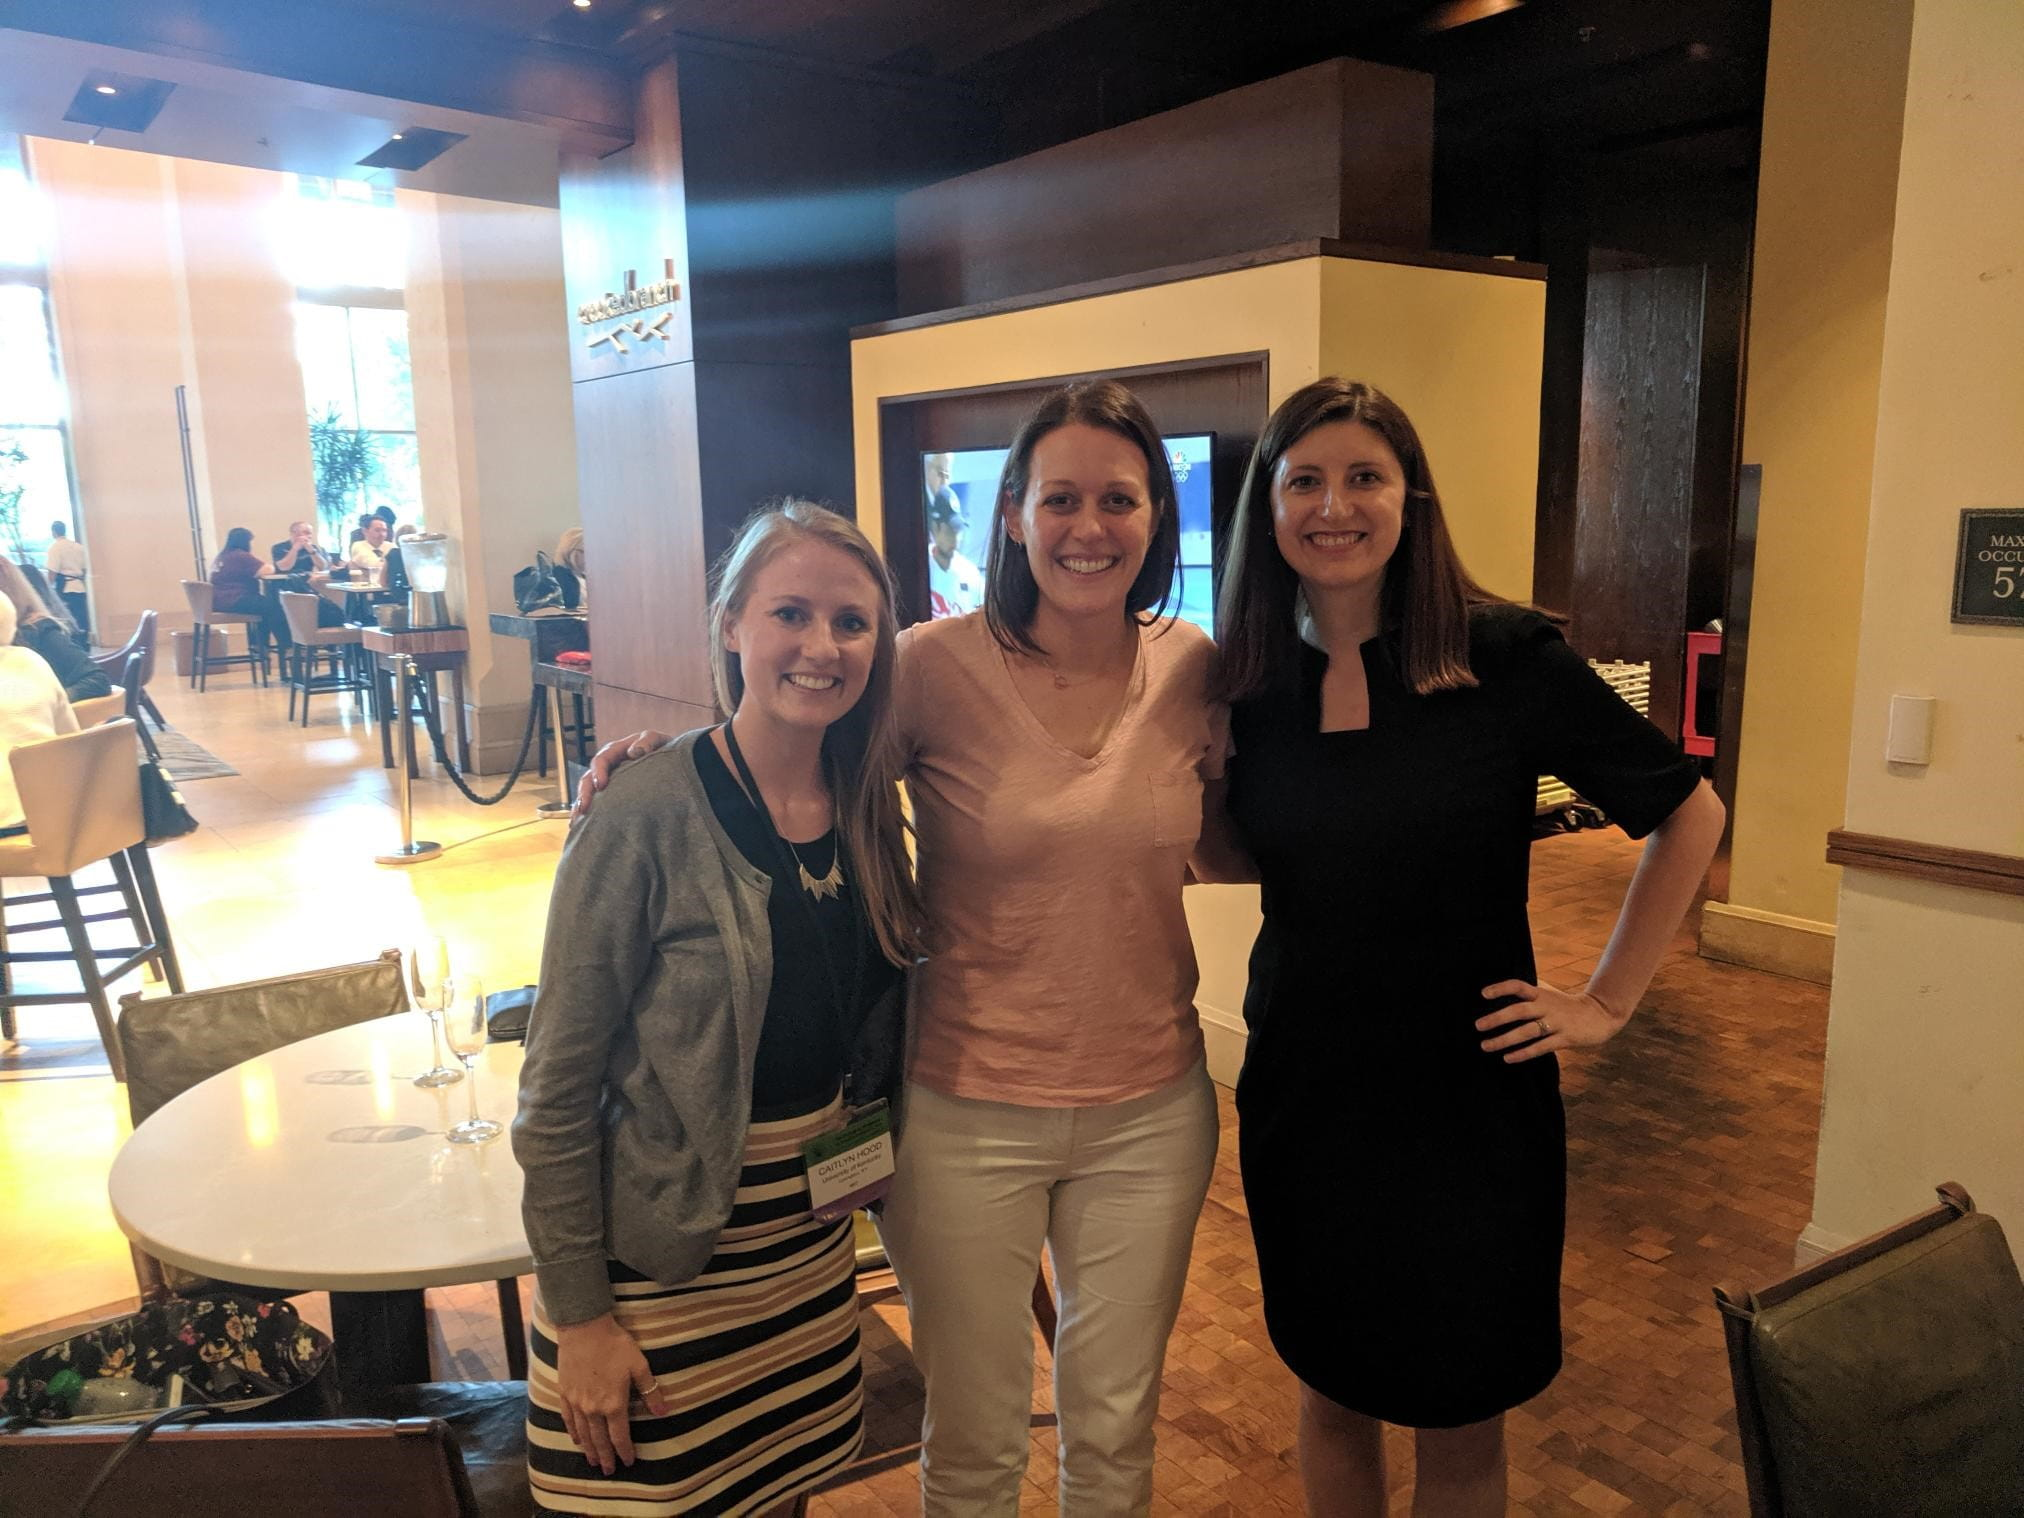 Caitlyn Hood with mentors Dr. McClure and Dr. Tomko at CPDD 2019